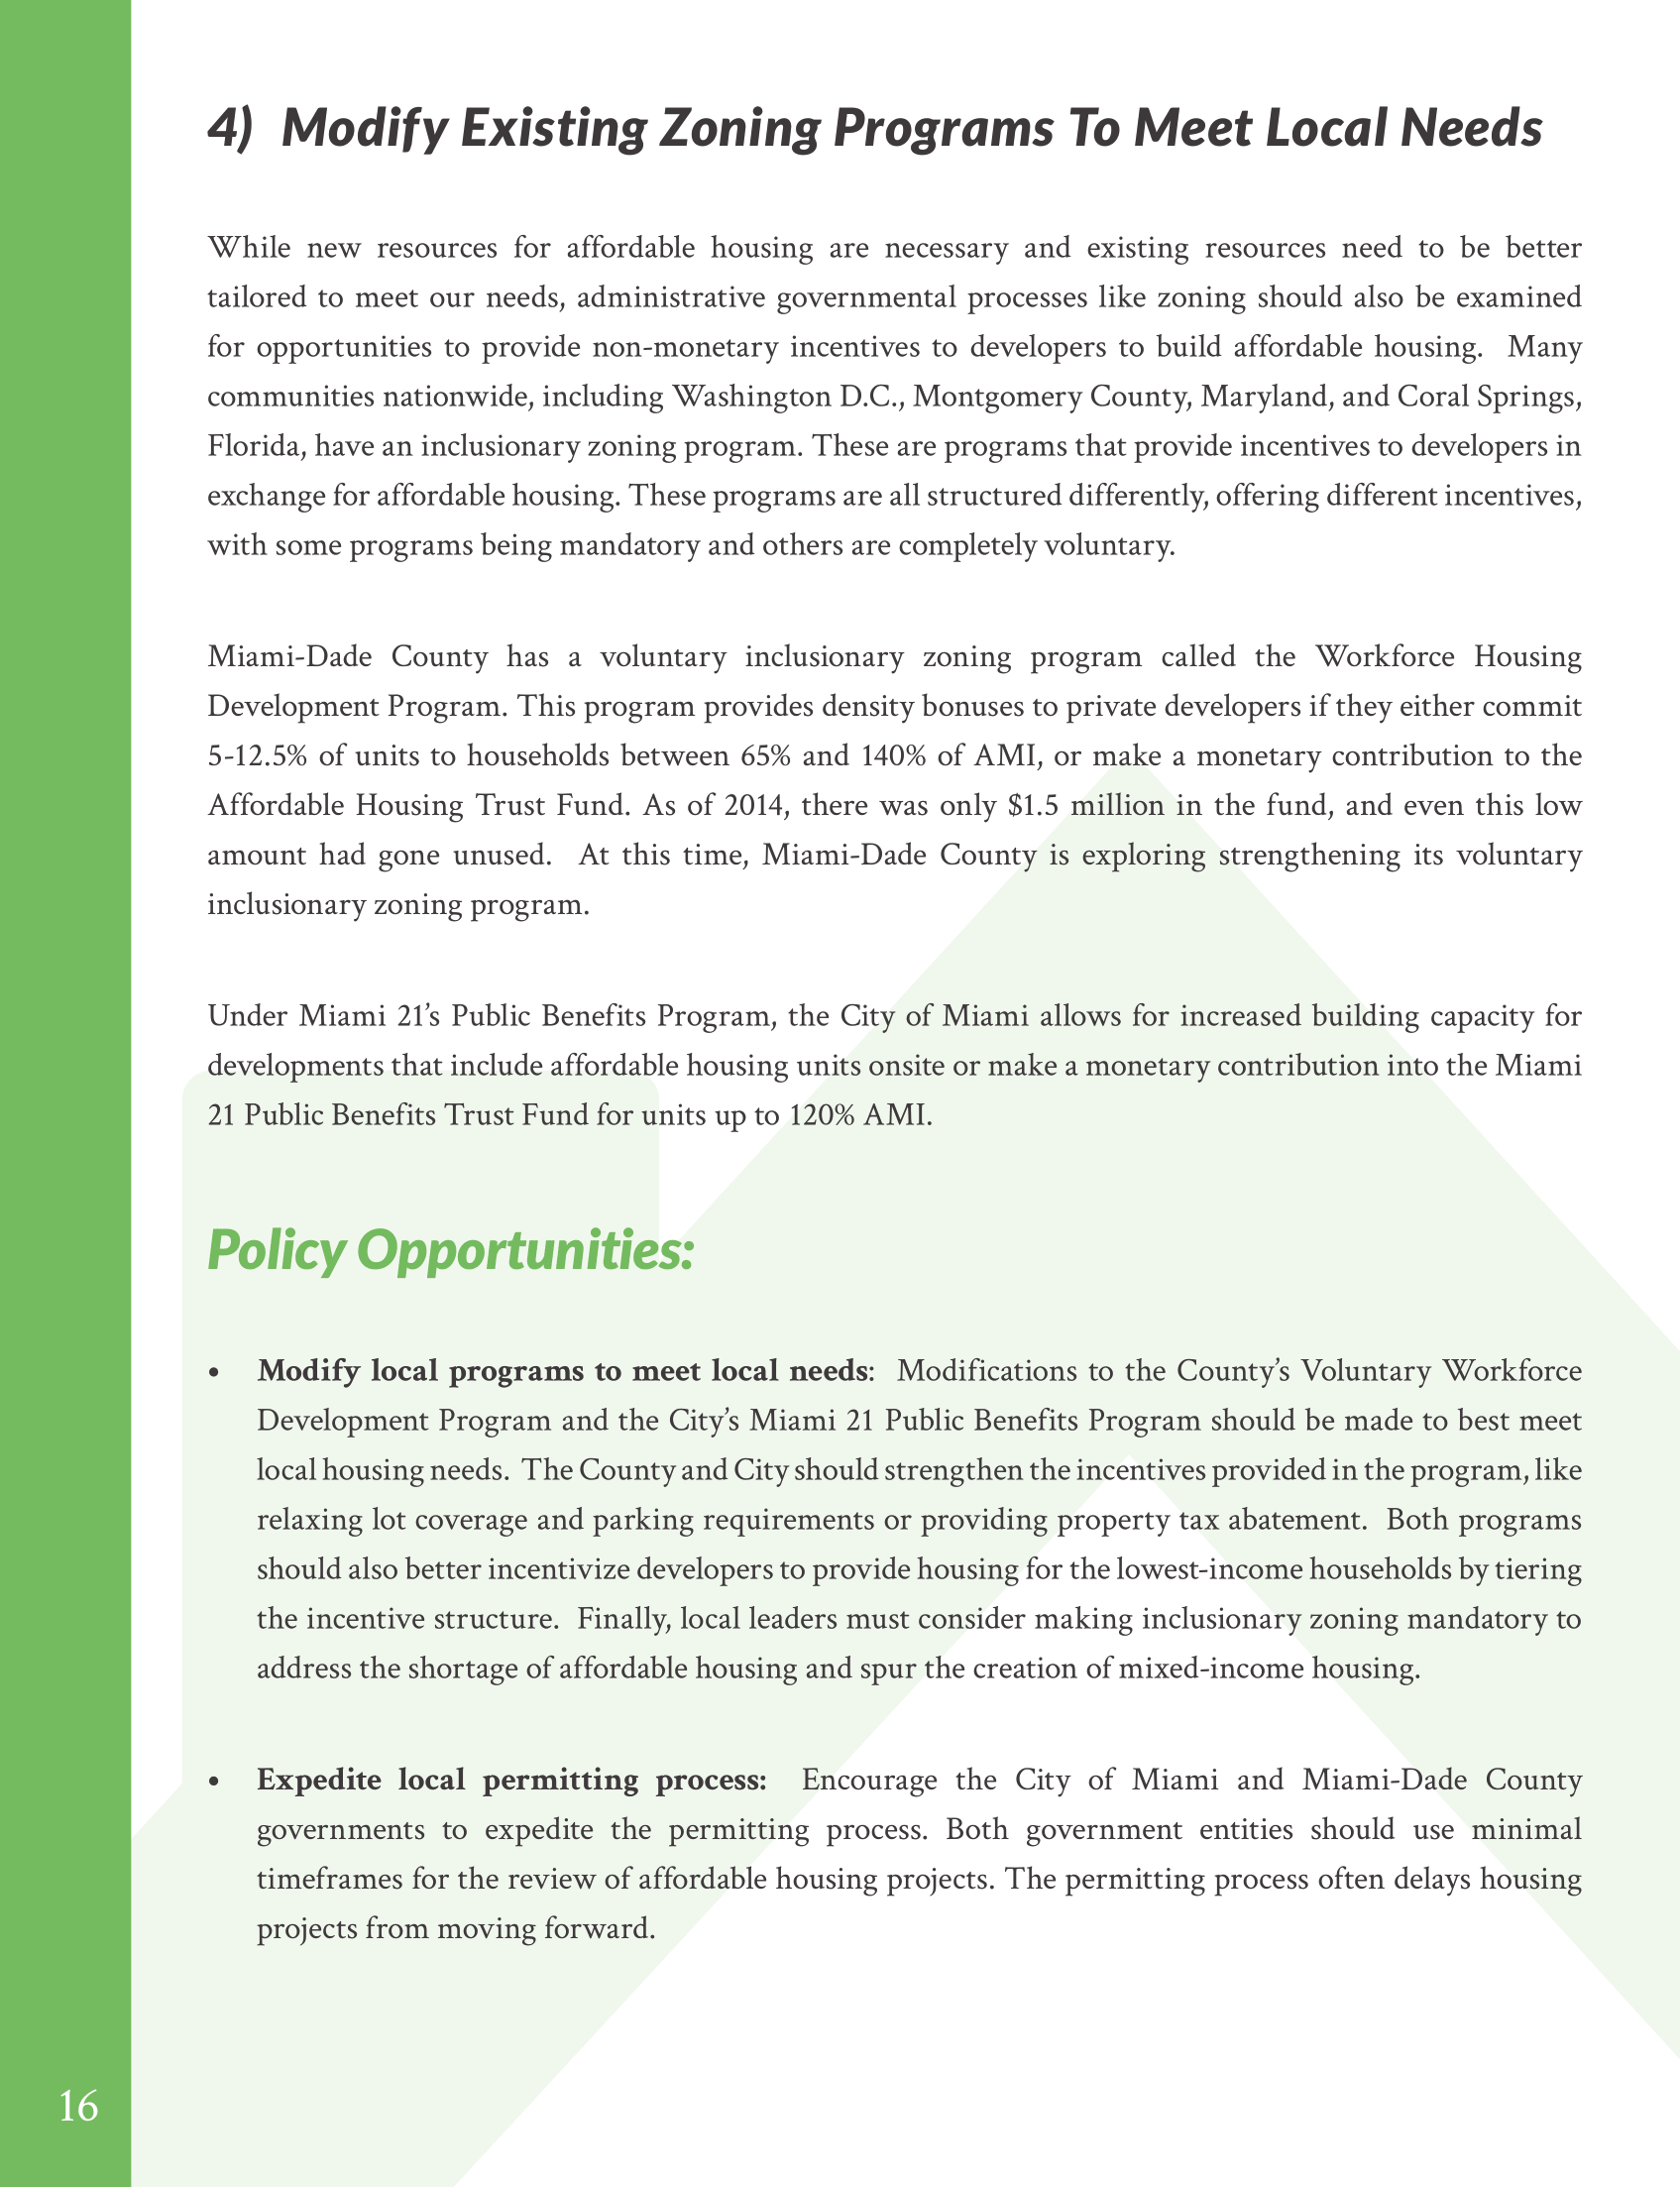 MHFA Policy Paper - 2016-16.png